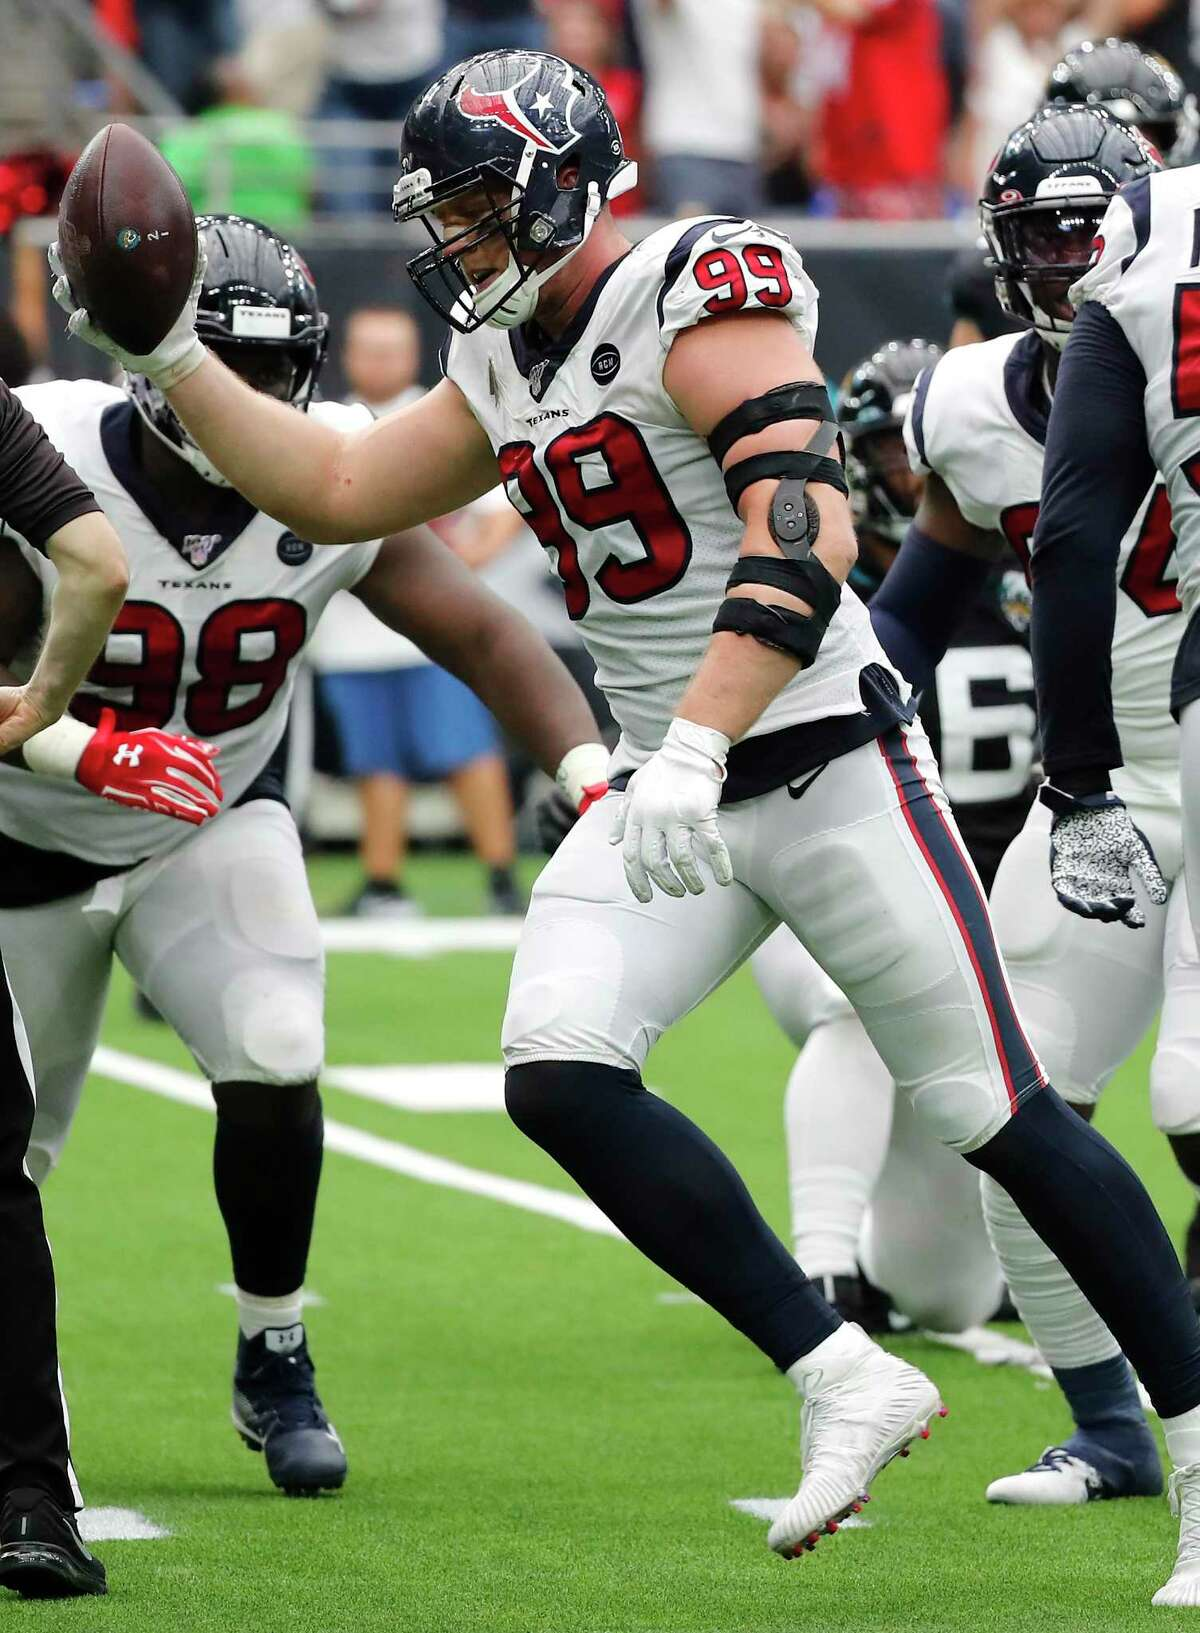 J.J. Watt said it will be a 'very surreal' moment and 'nerve-wracking' for their mom.